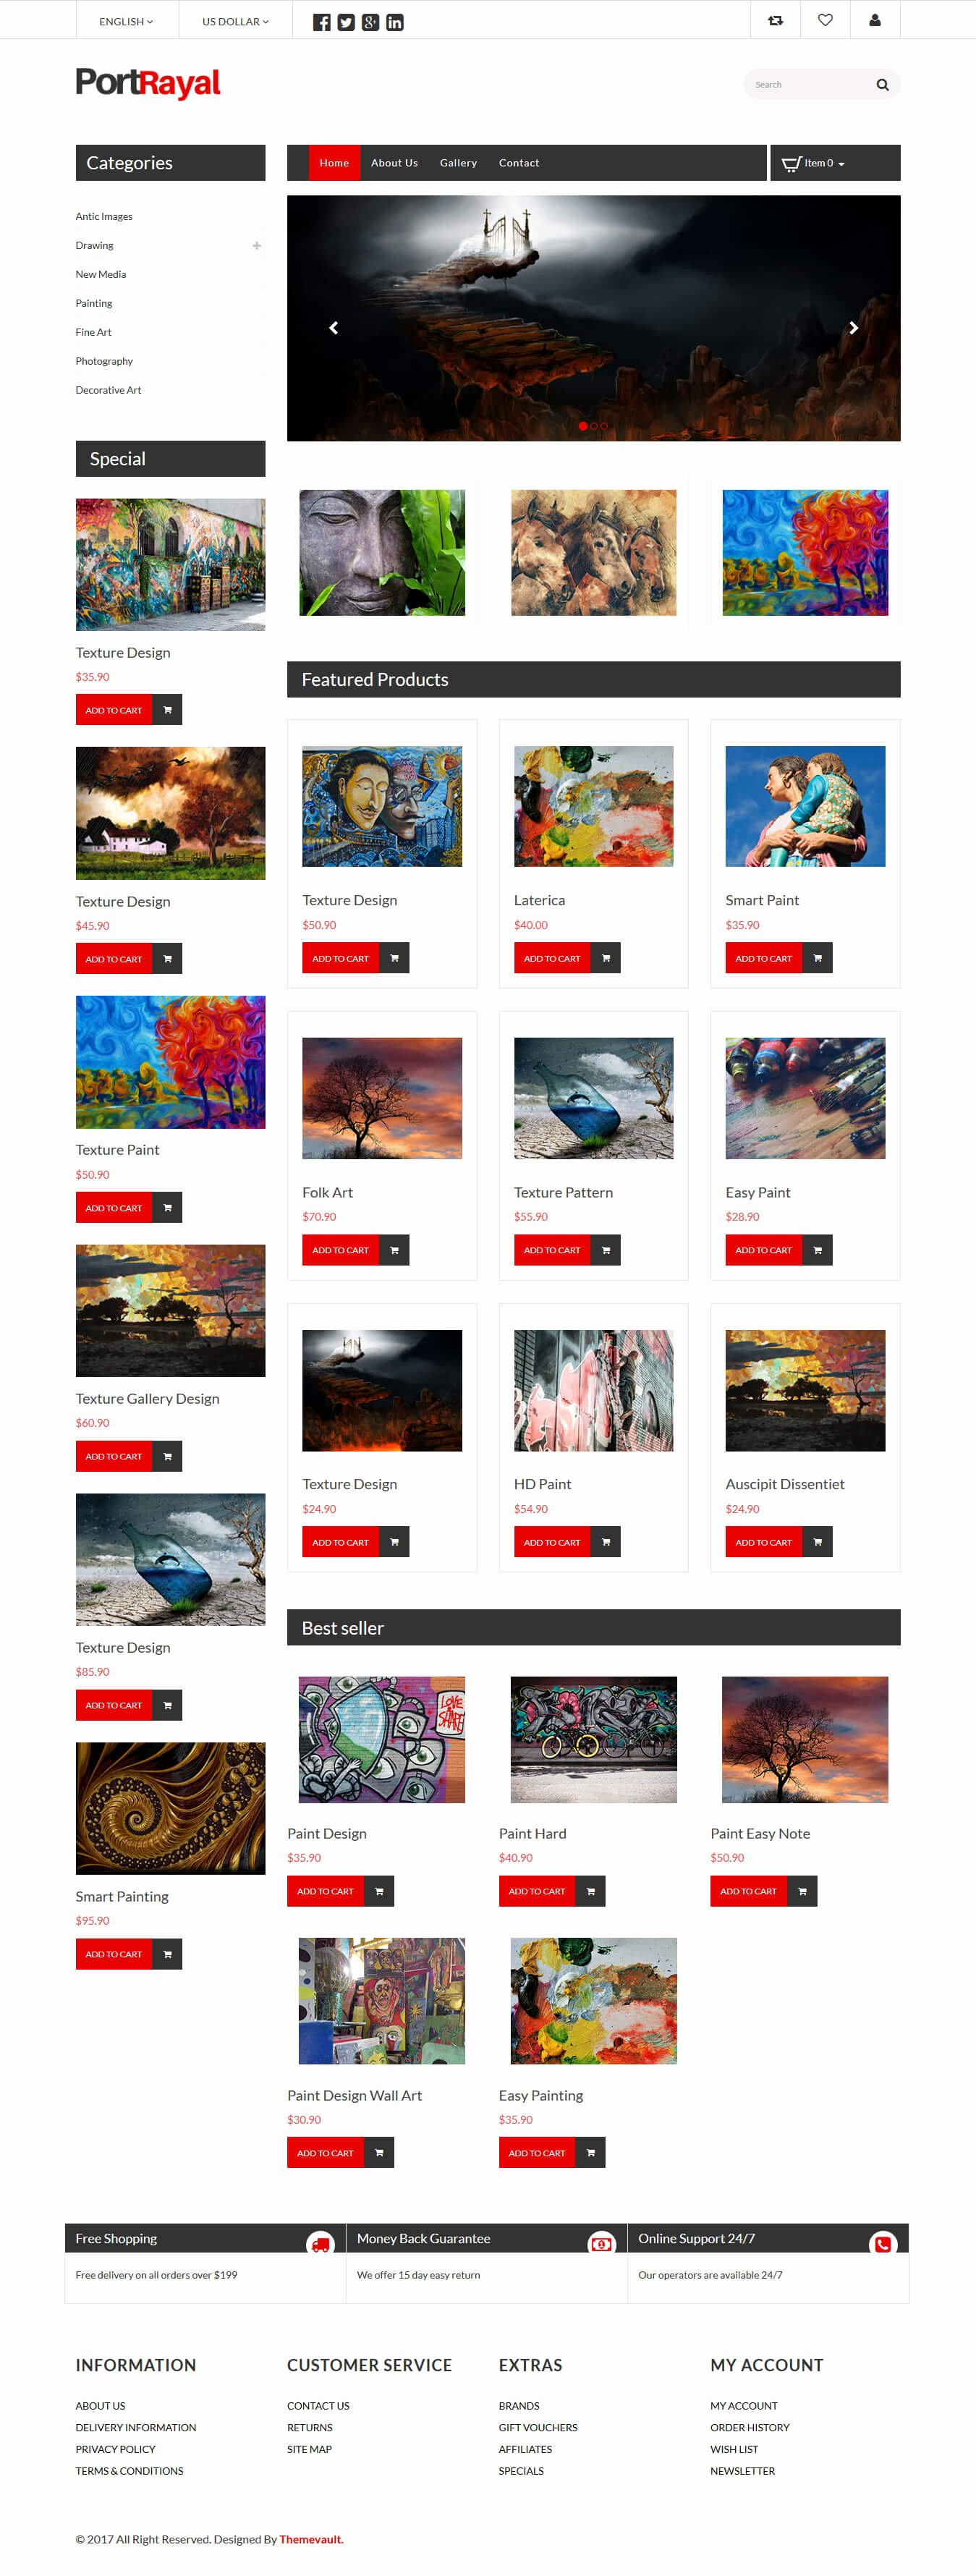 Photo Gallery Template HTML5 Unique Portrayal – HTML5 Line Art Gallery Website Template